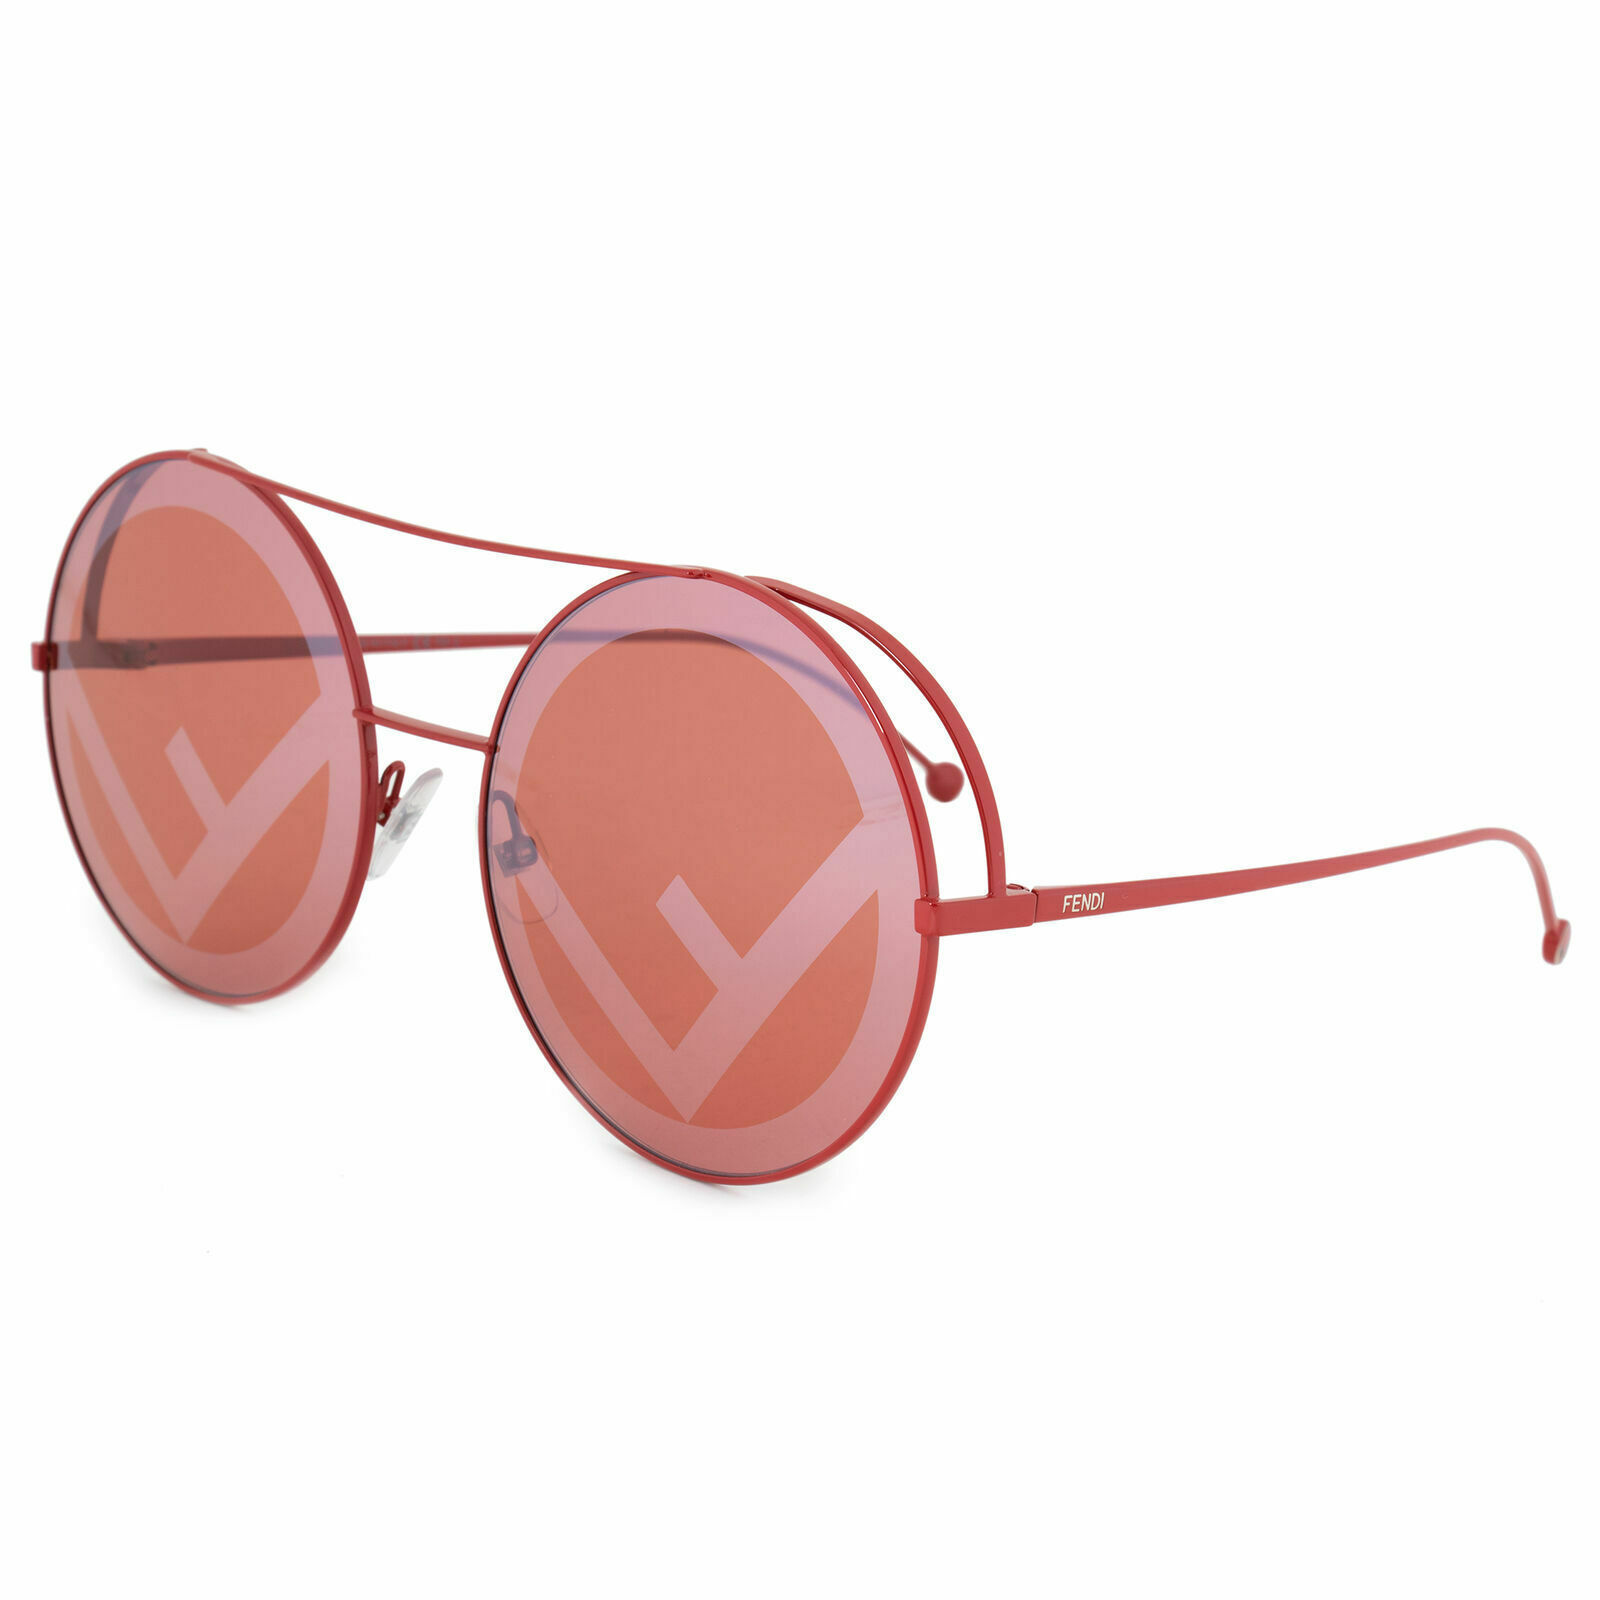 FENDI RUN AWAY FF 0285/S C9A Red Round Metal Sunglasses 63mm